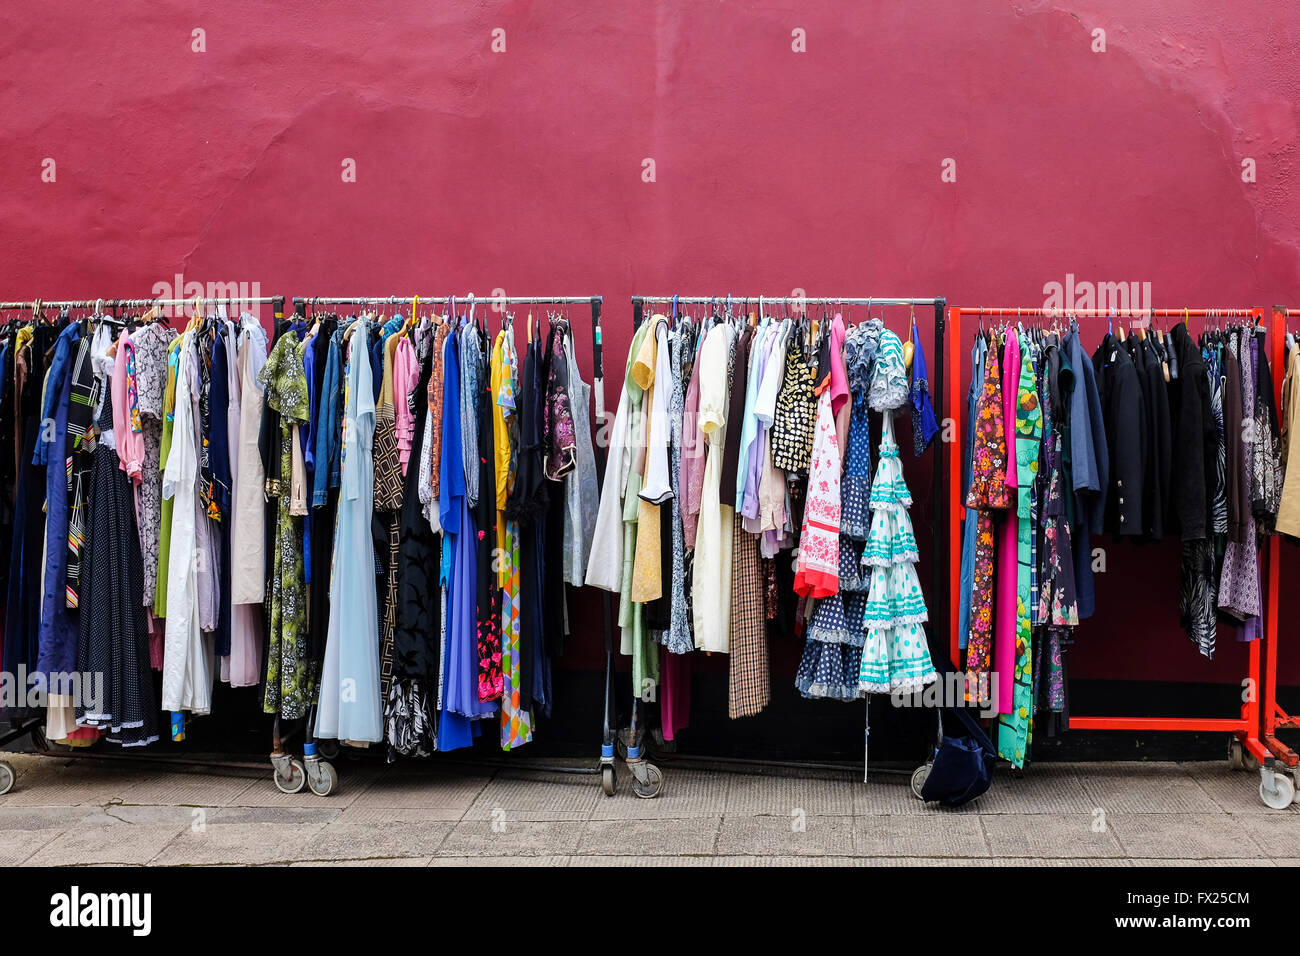 Secondhand Clothes Stock Photos & Secondhand Clothes Stock Images ...